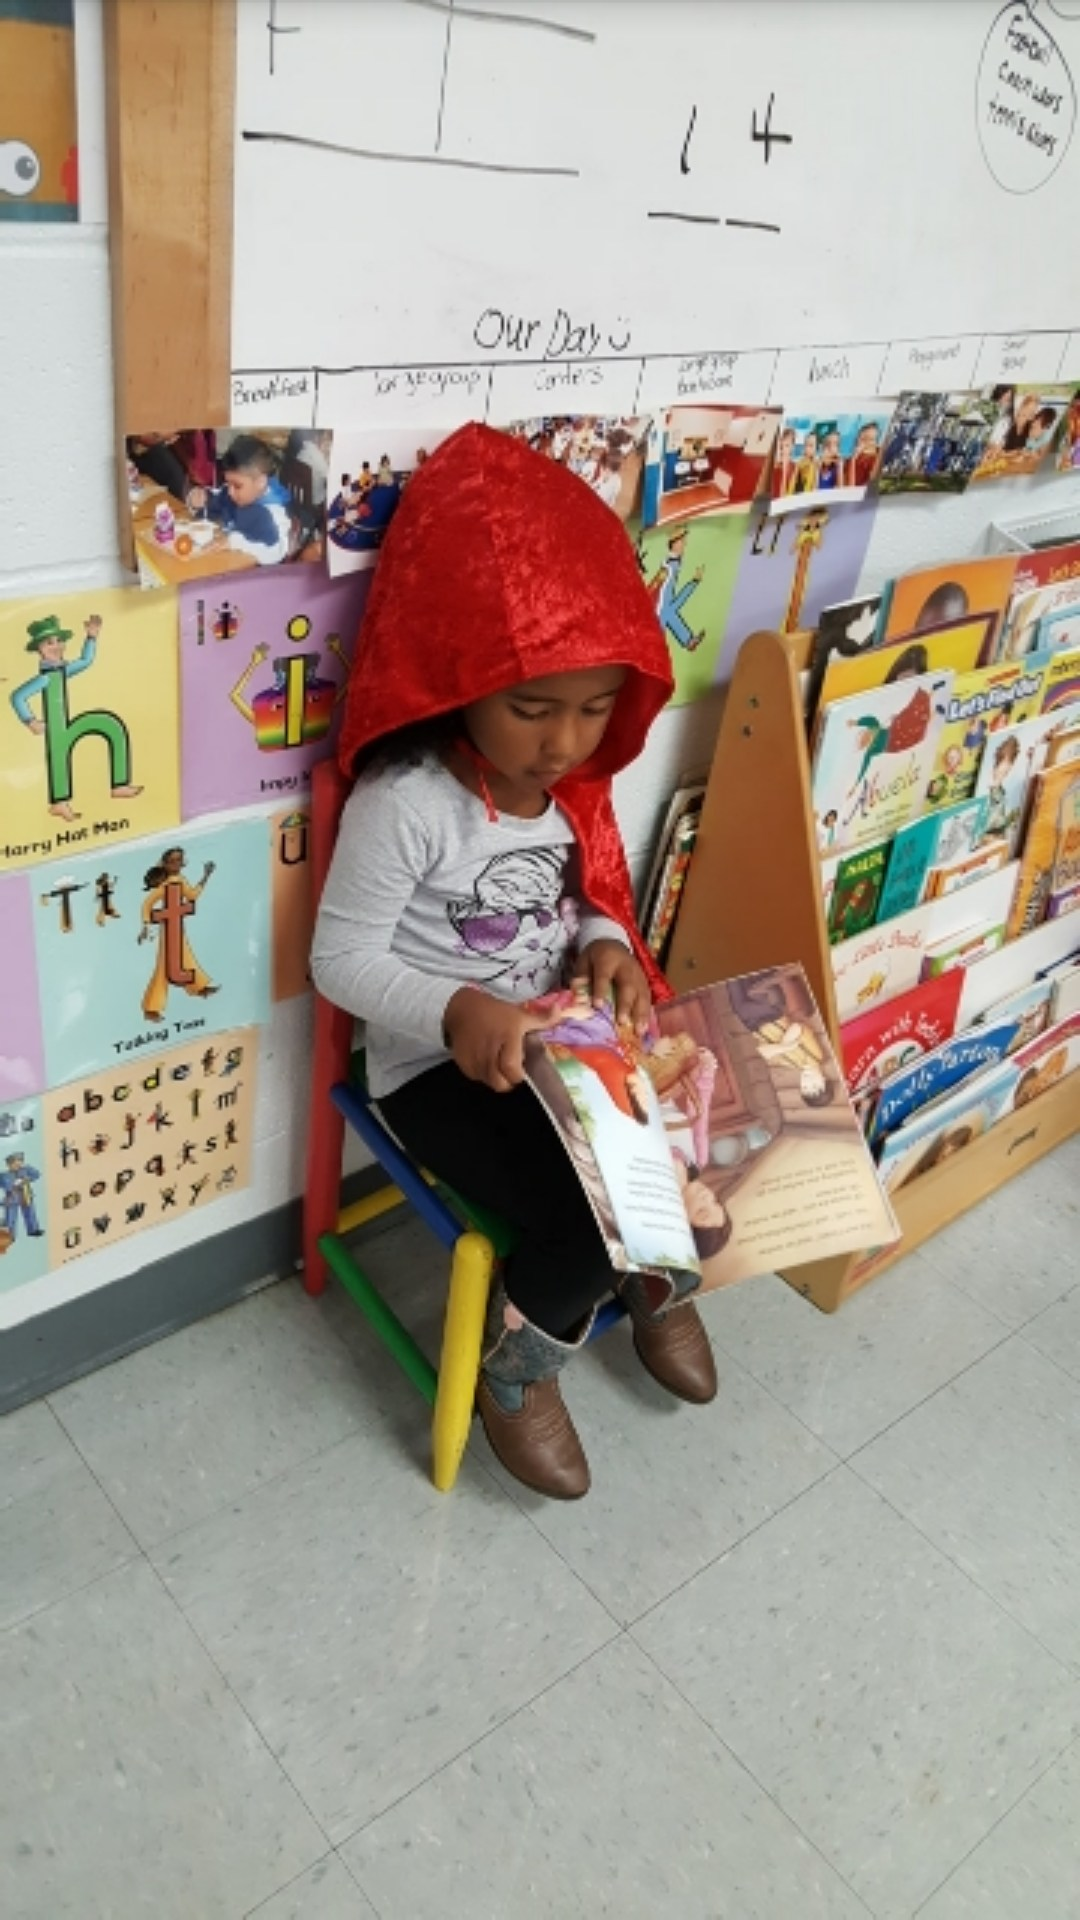 Reading Little Red Writing Hood